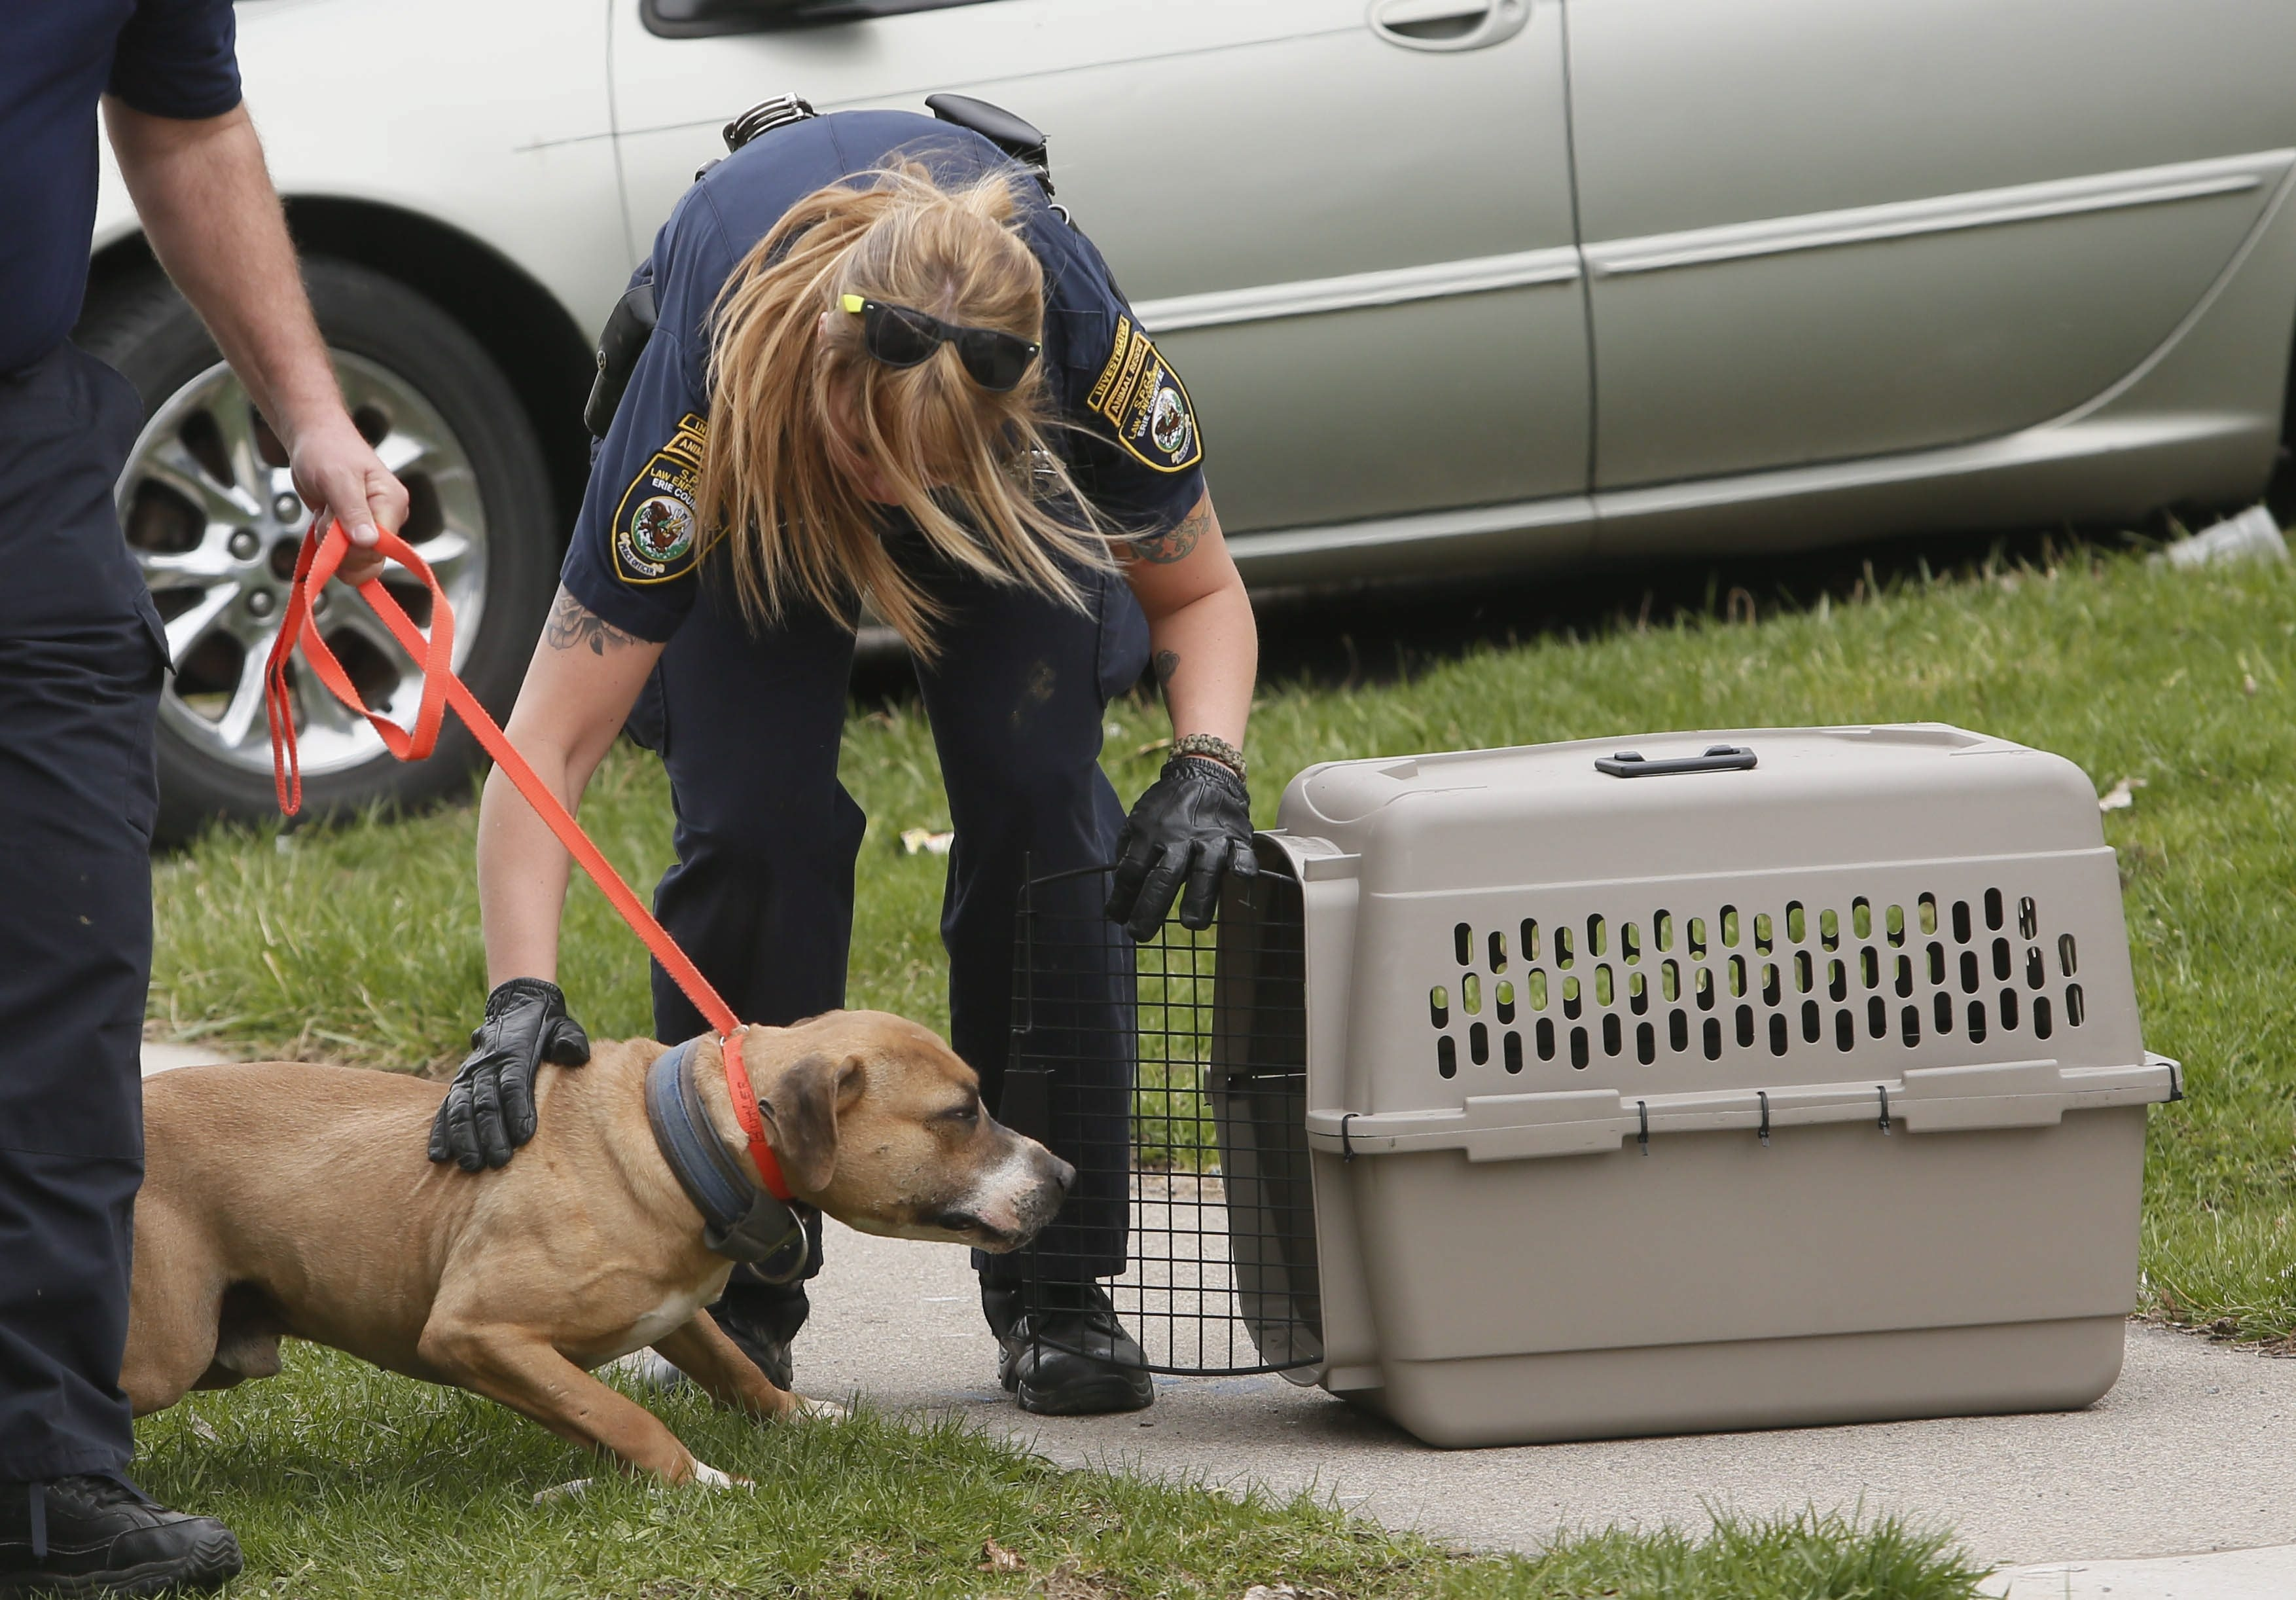 Officers from the SPCA load a dog into a crate outside of 269 Loring Ave., one of seven houses raided by Buffalo Police and SPCA as part of an investigation into an alleged dogfighting ring, Friday, April 25, 2014.  (Derek Gee/Buffalo News)